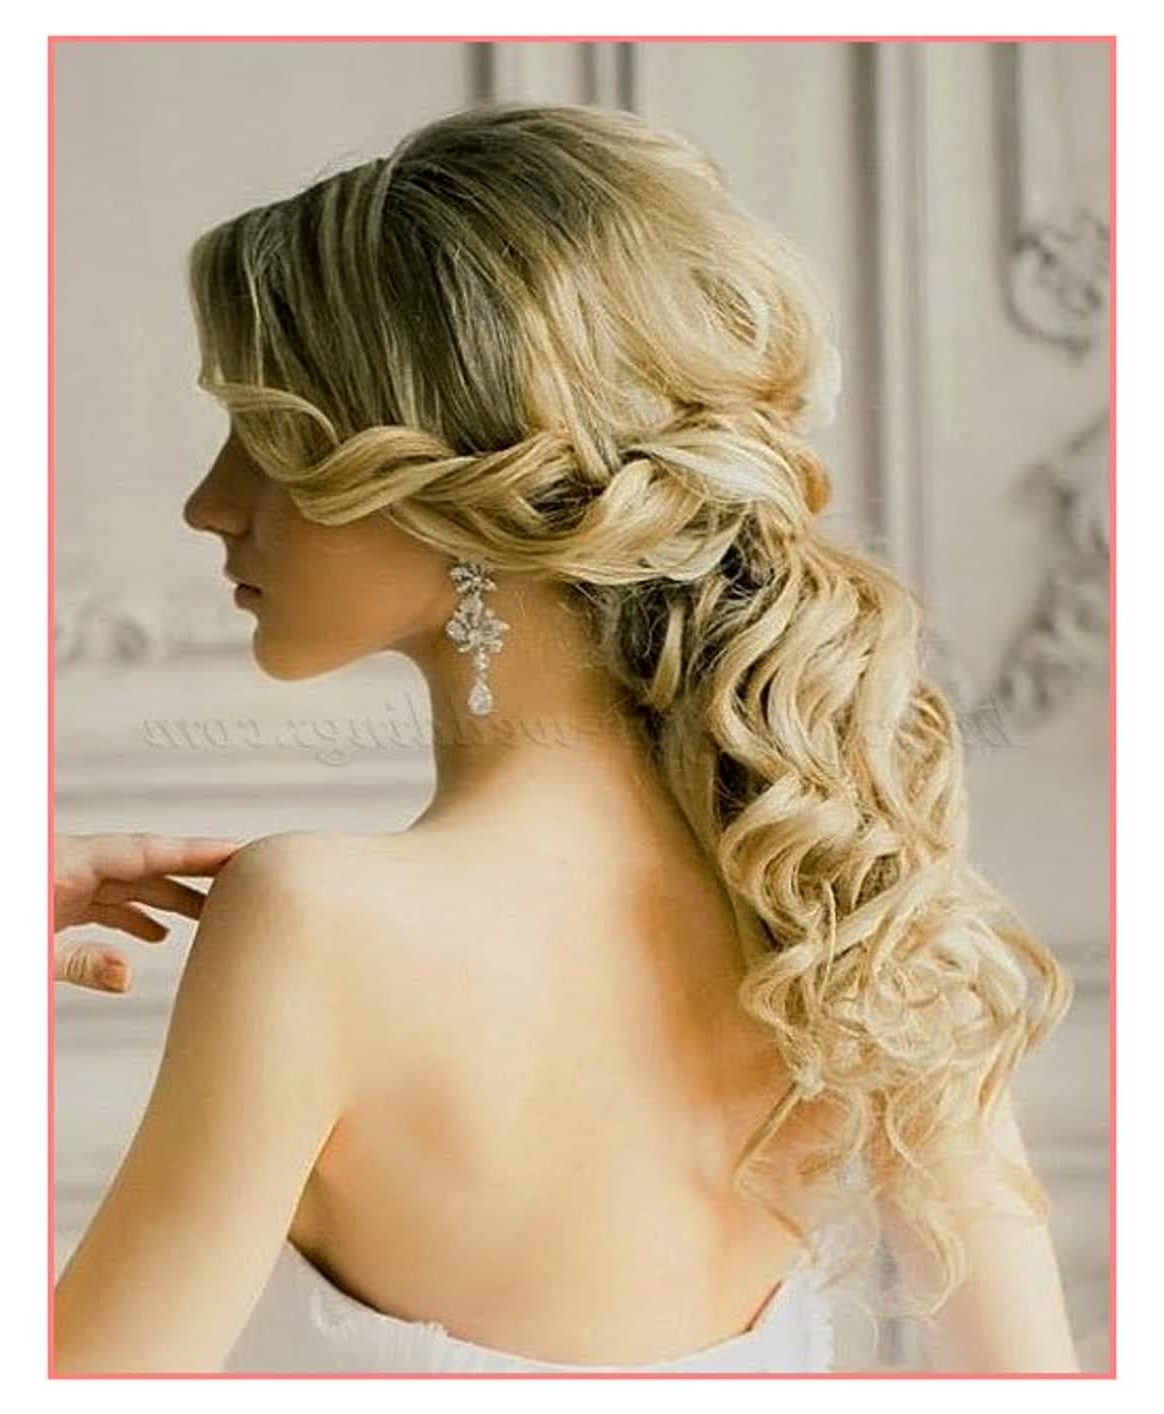 Medium Length Hairstyles For Weddings: 15 Ideas Of Wedding Down Hairstyles For Medium Length Hair